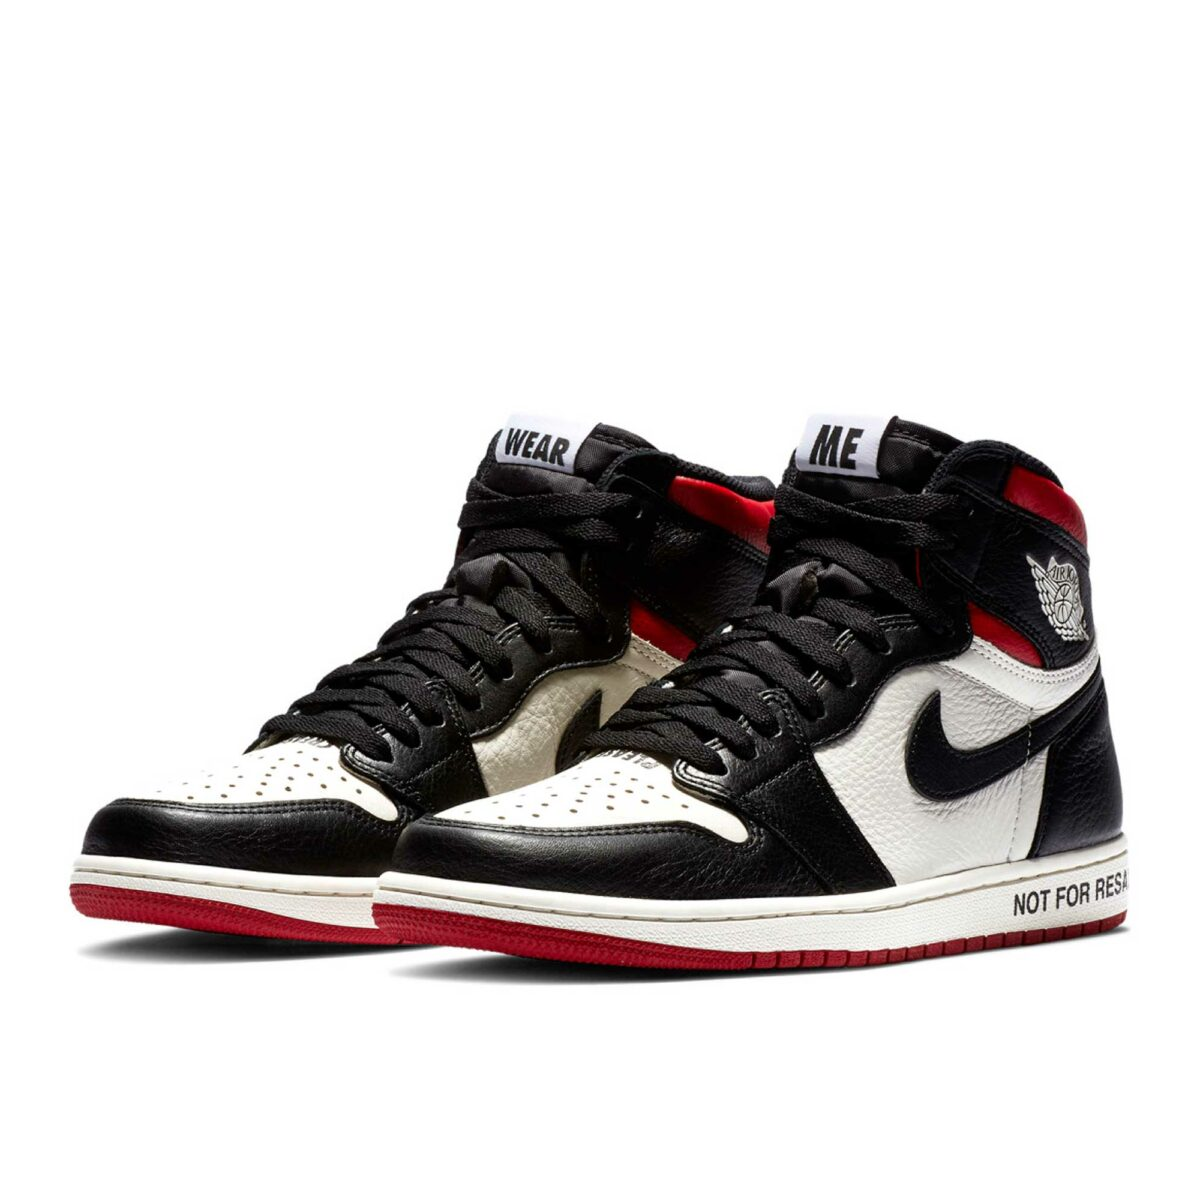 nike air Jordan 1 high og not for resale 861428_106 купить